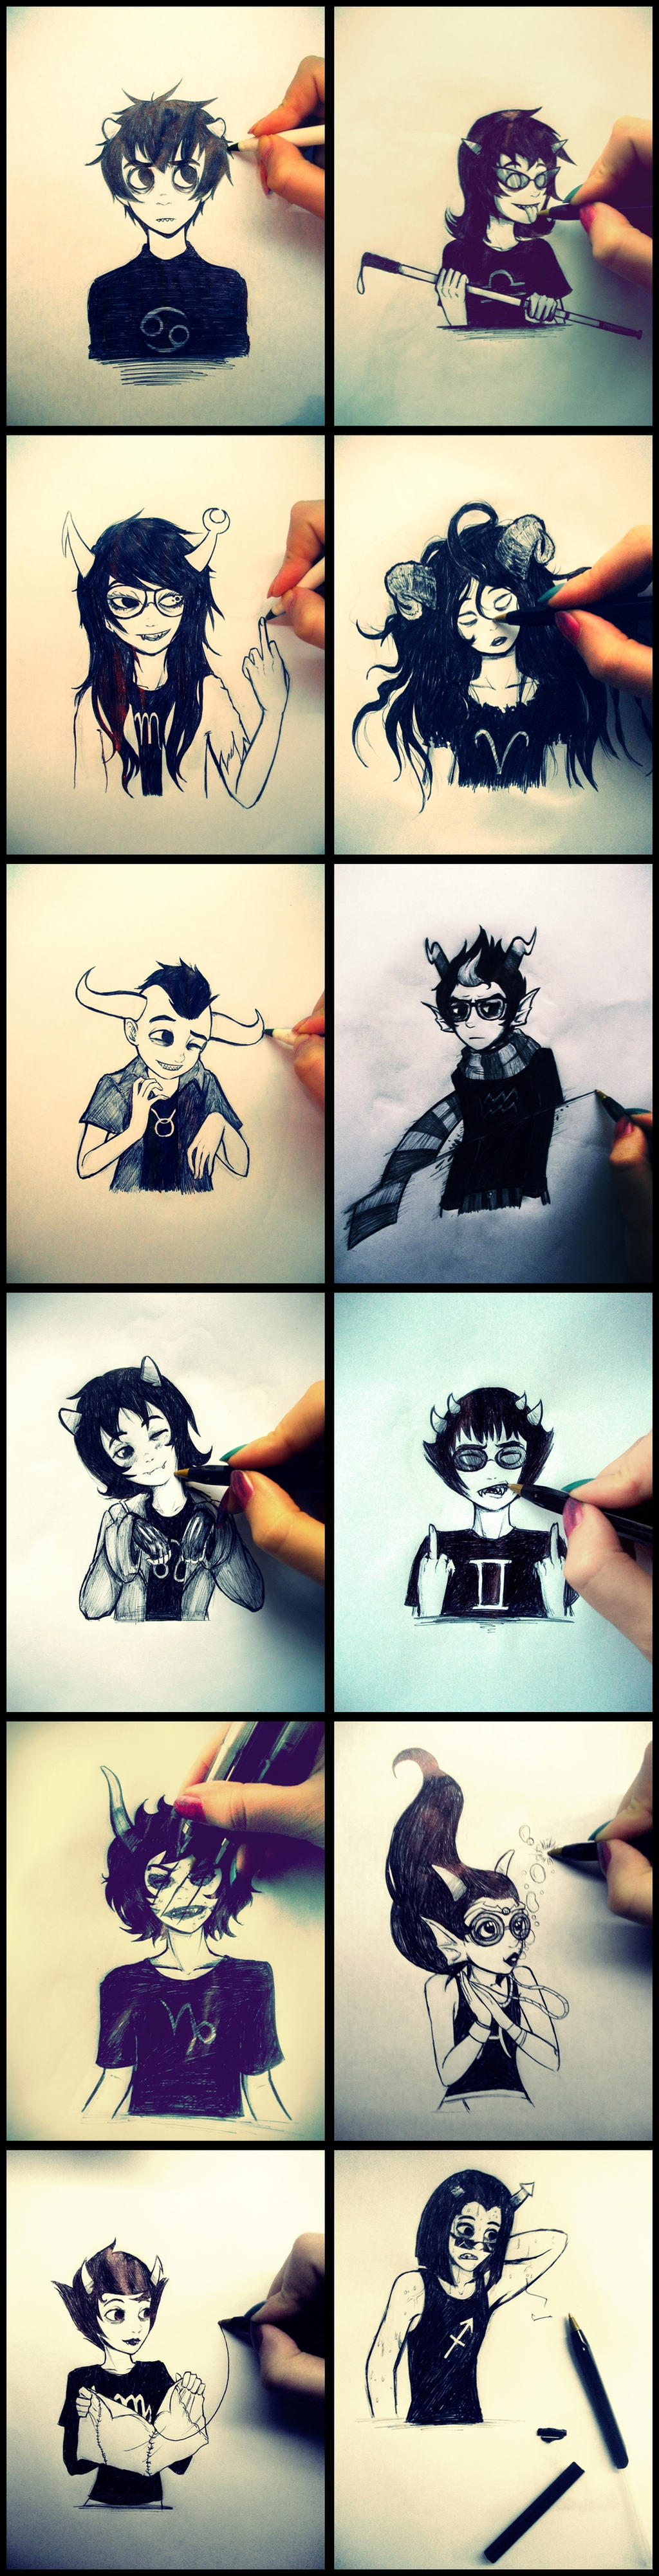 Homestuck - Playing with trolls c: by MelSpontaneus